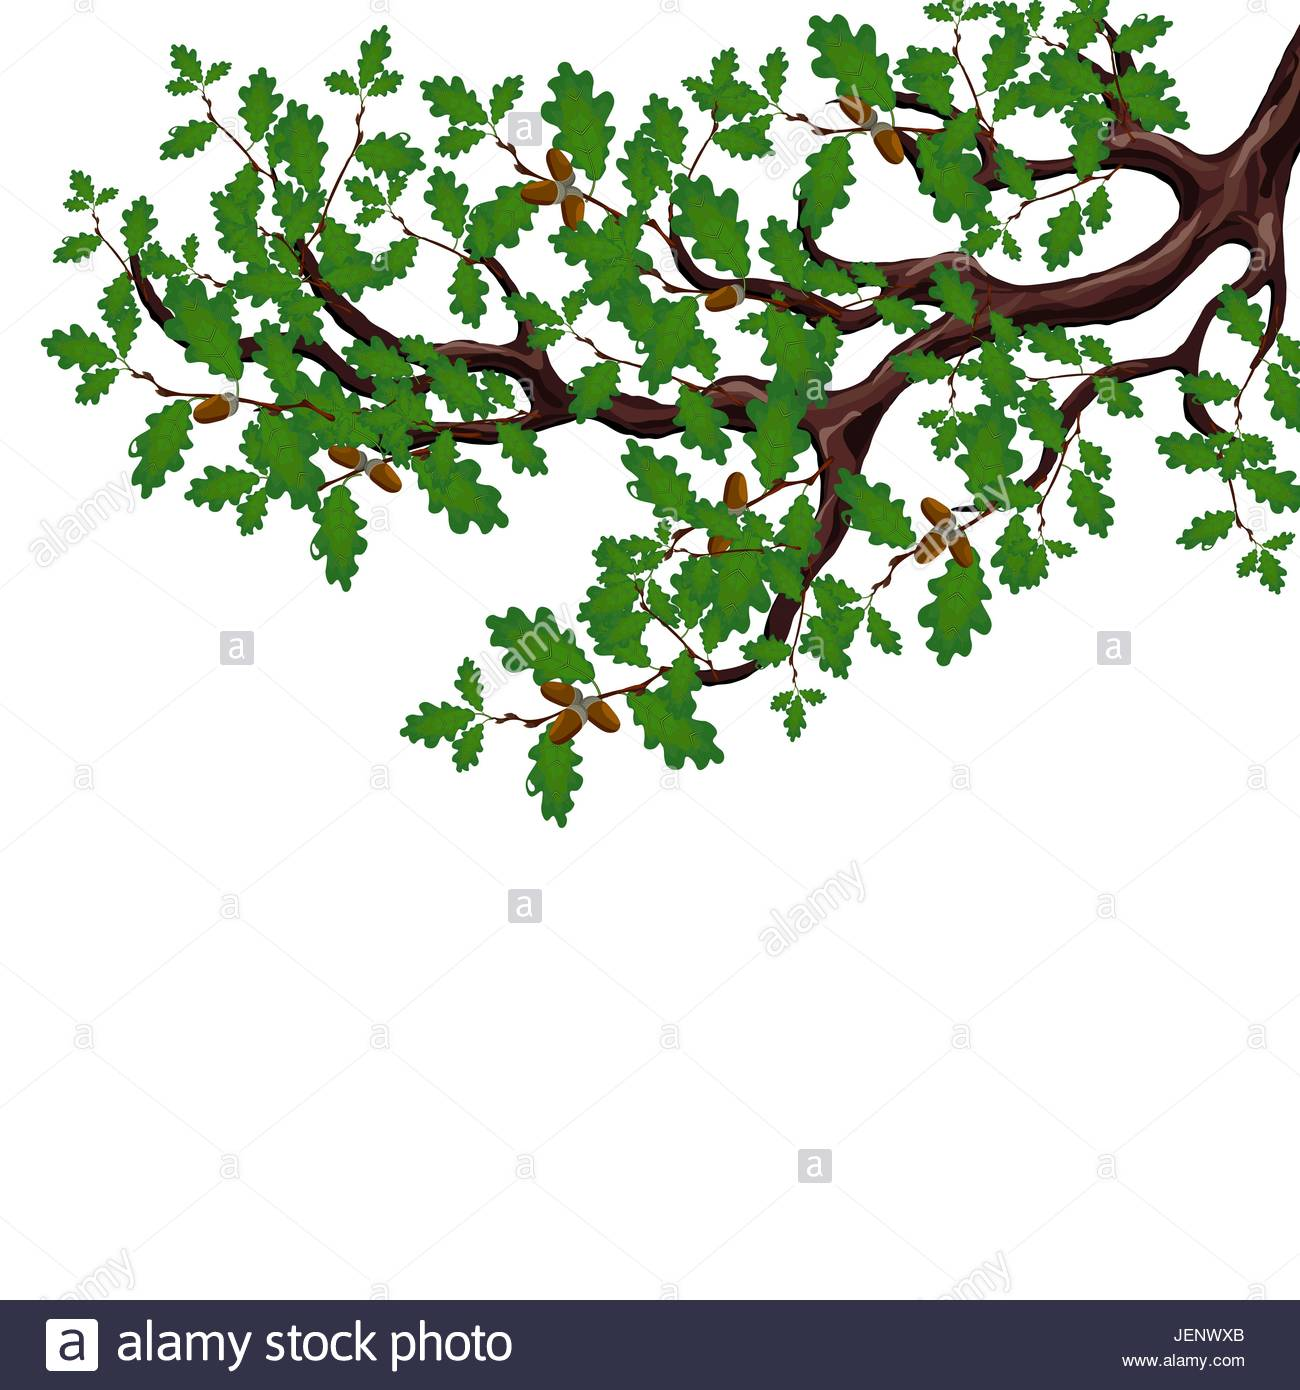 1300x1390 A Green Branch Of A Large Oak Tree With Acorns. Volumetric Drawing